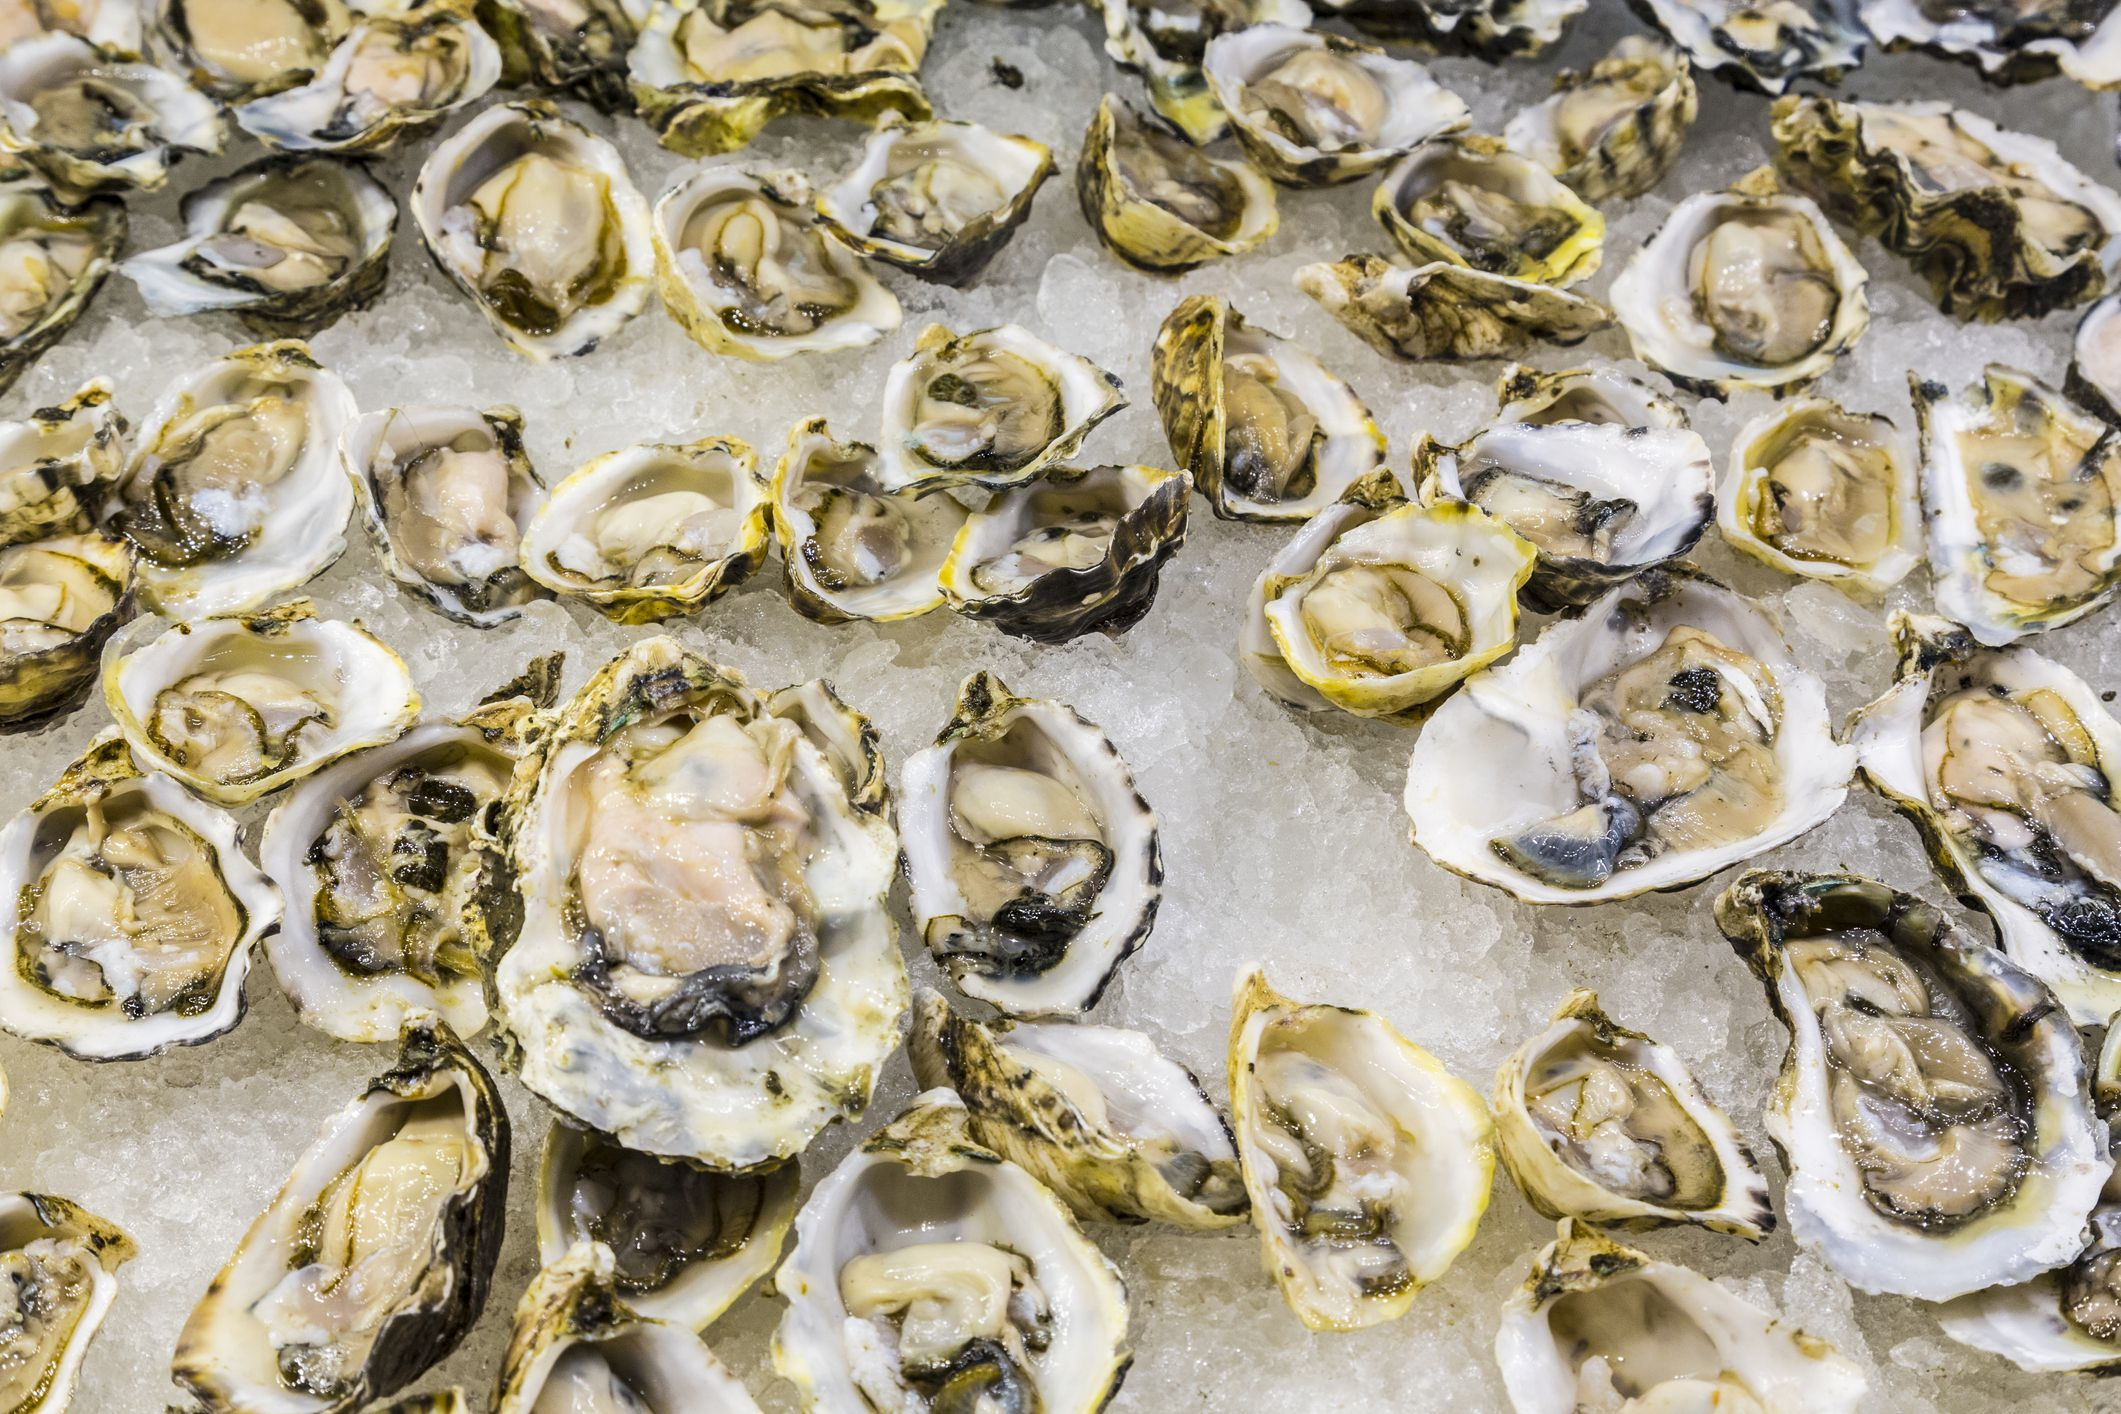 Head to the Raw Bar in Las Vegas for Oysters